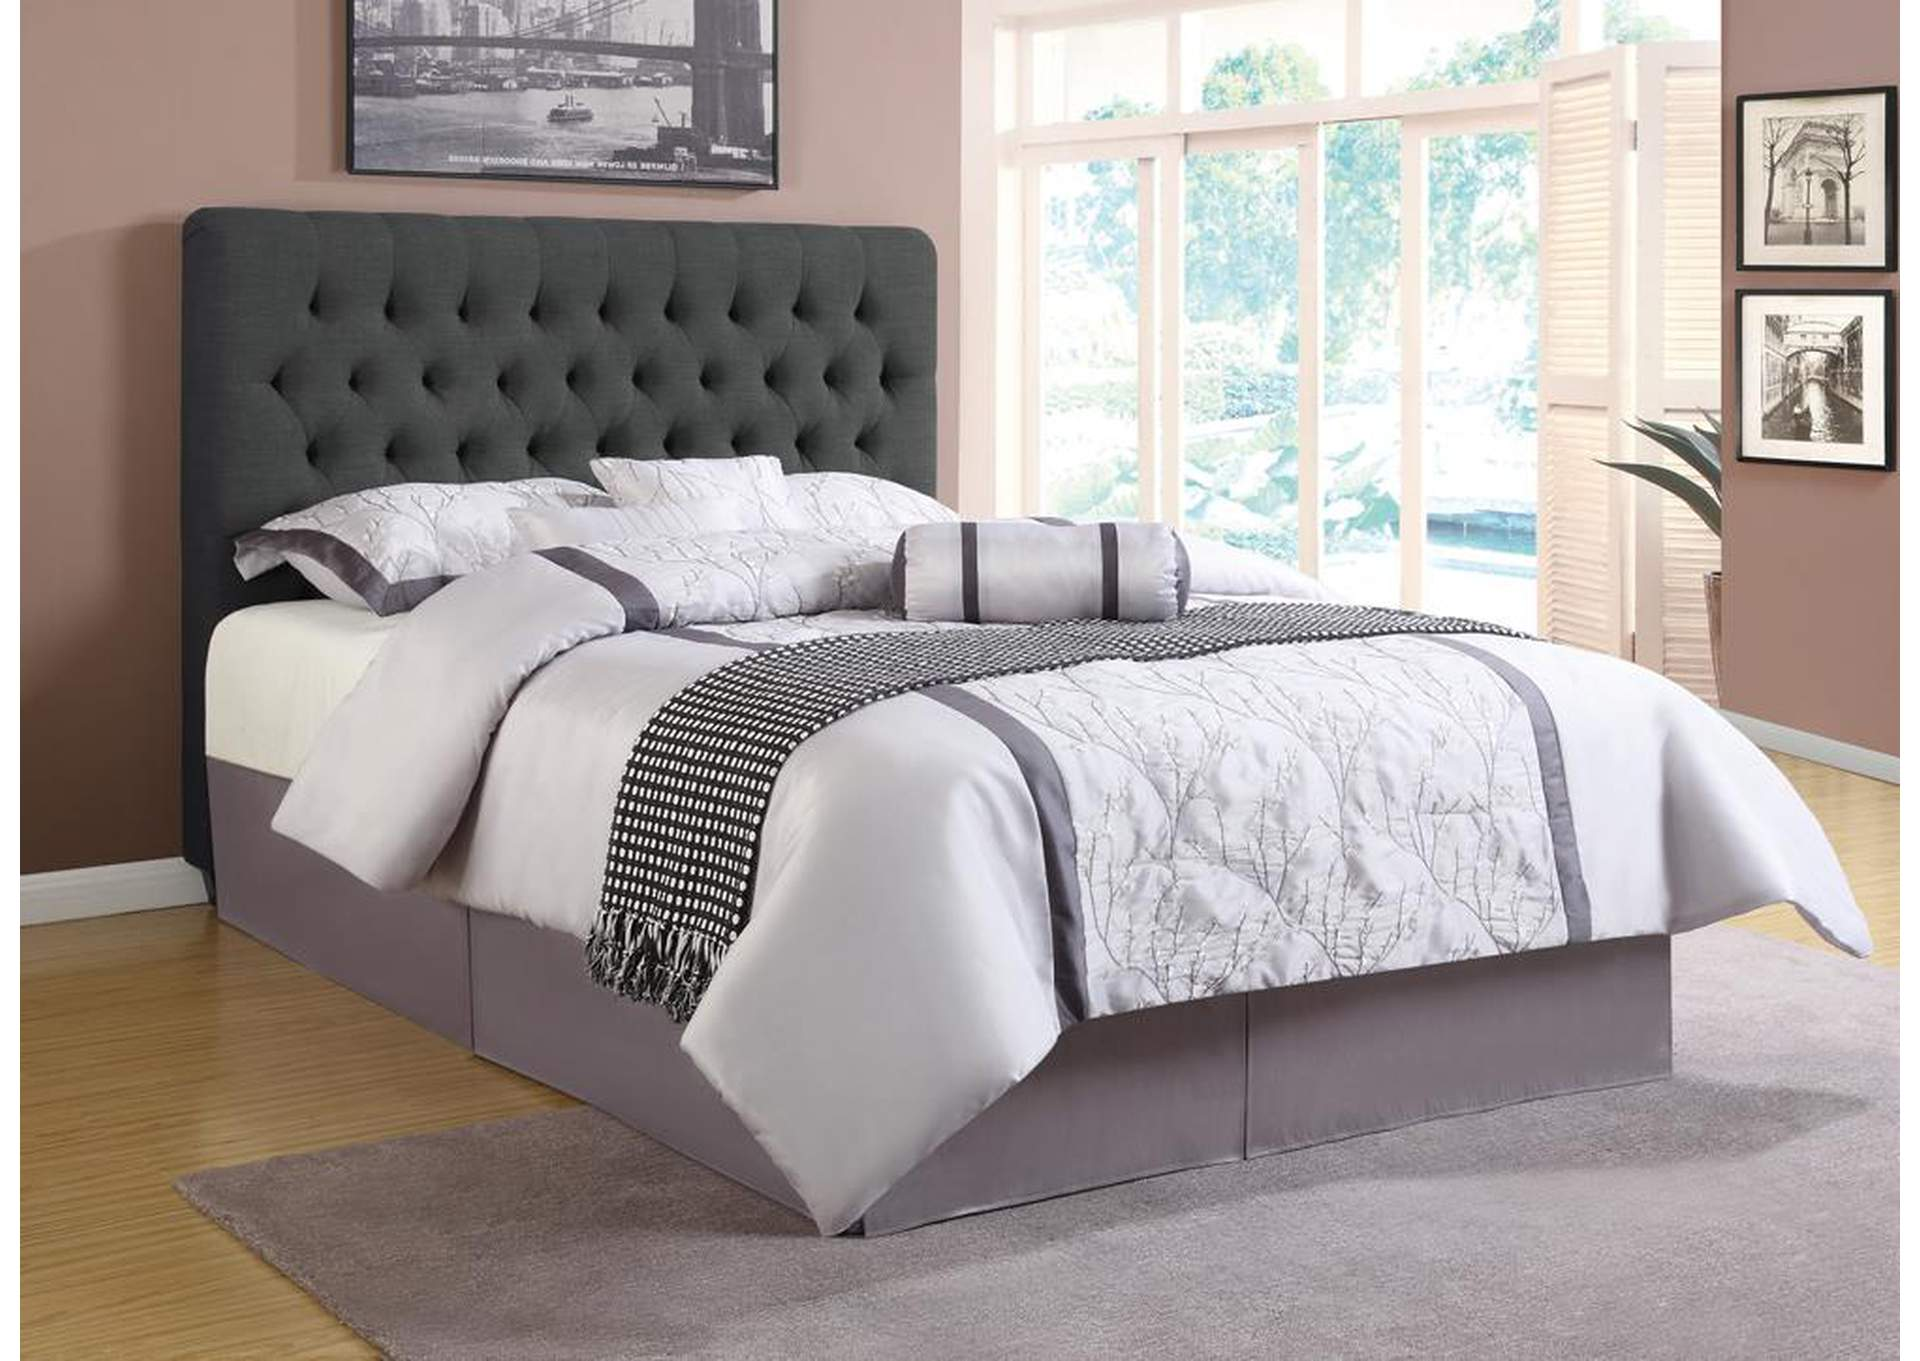 Chloe Charcoal Upholstered Full Bed,Coaster Furniture